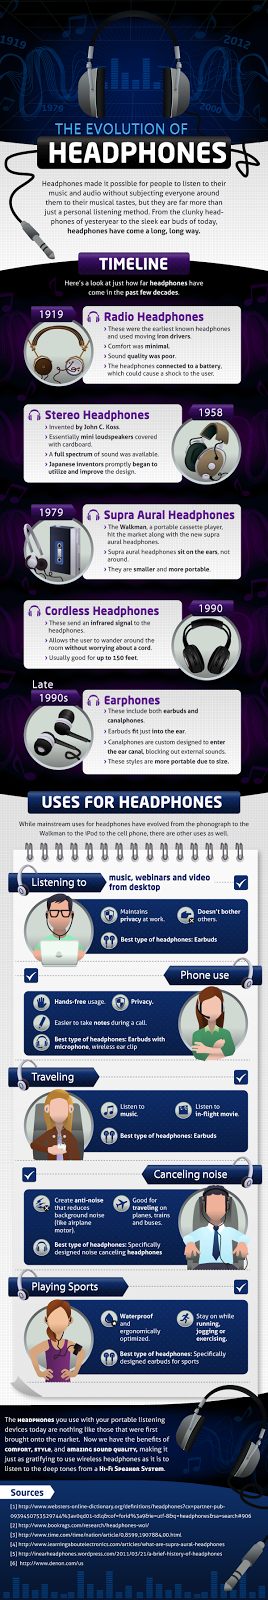 http://www.trendhunter.com/trends/the-evolution-of-headphones